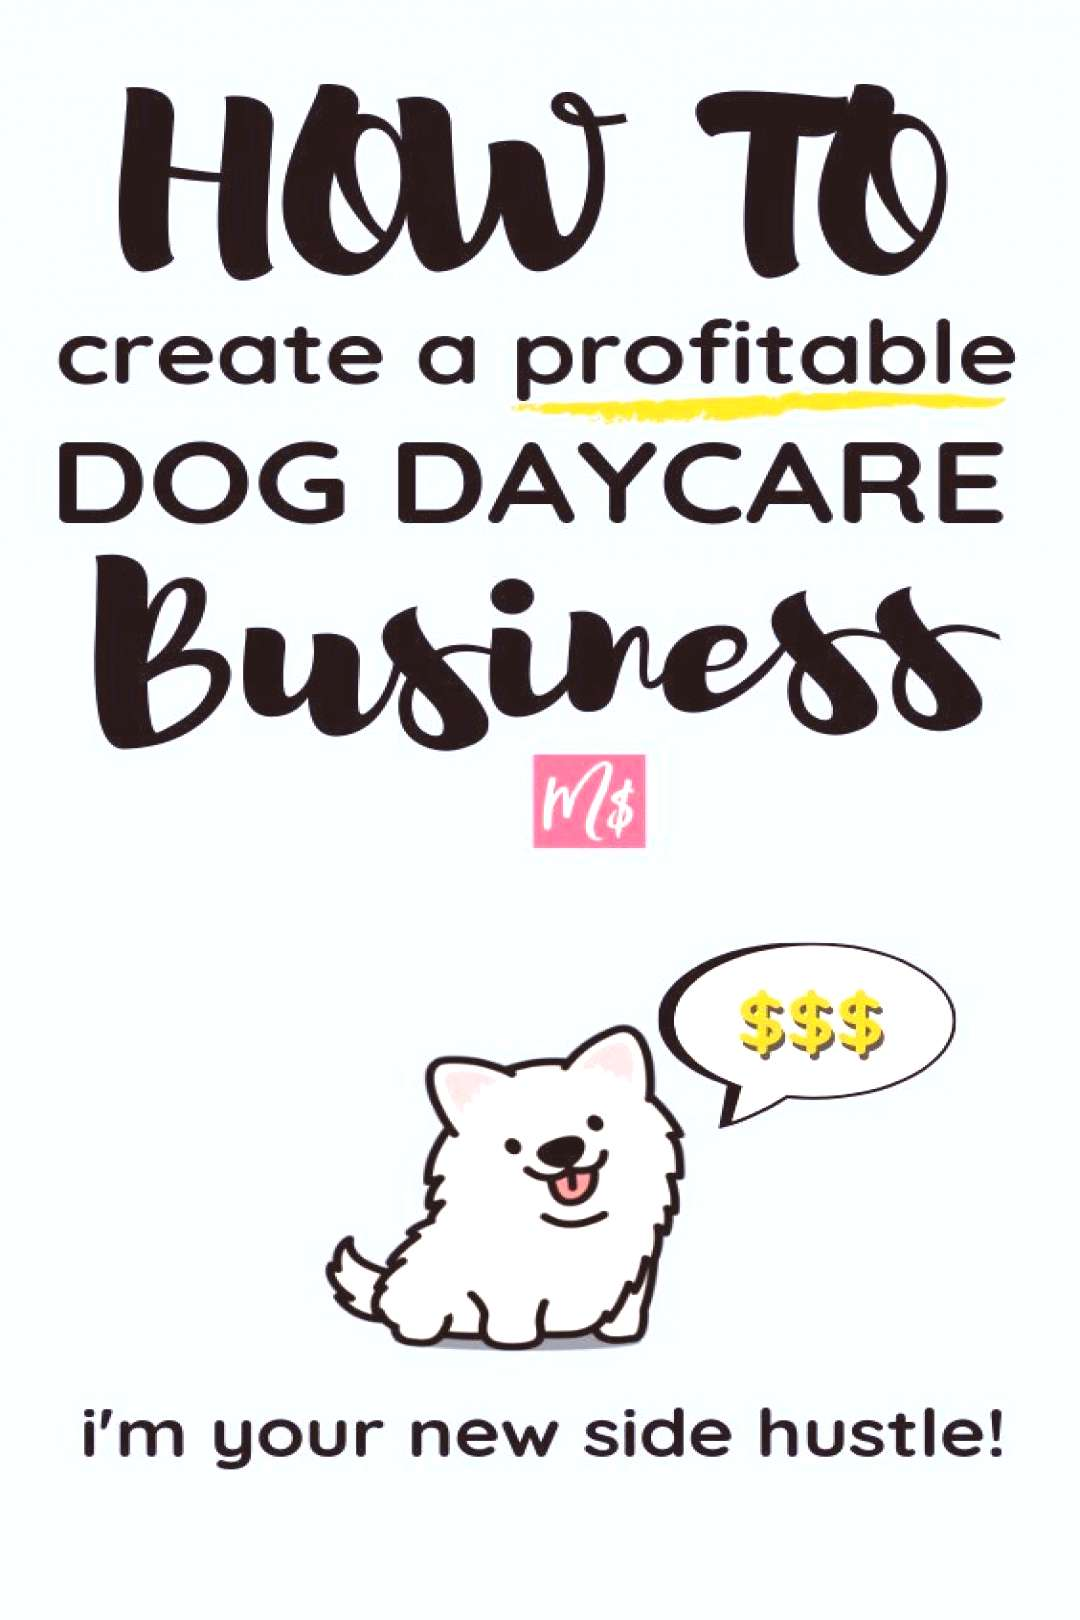 Pet boarding business and ideas for animal lovers. A terrific new career thats always hiring. I go